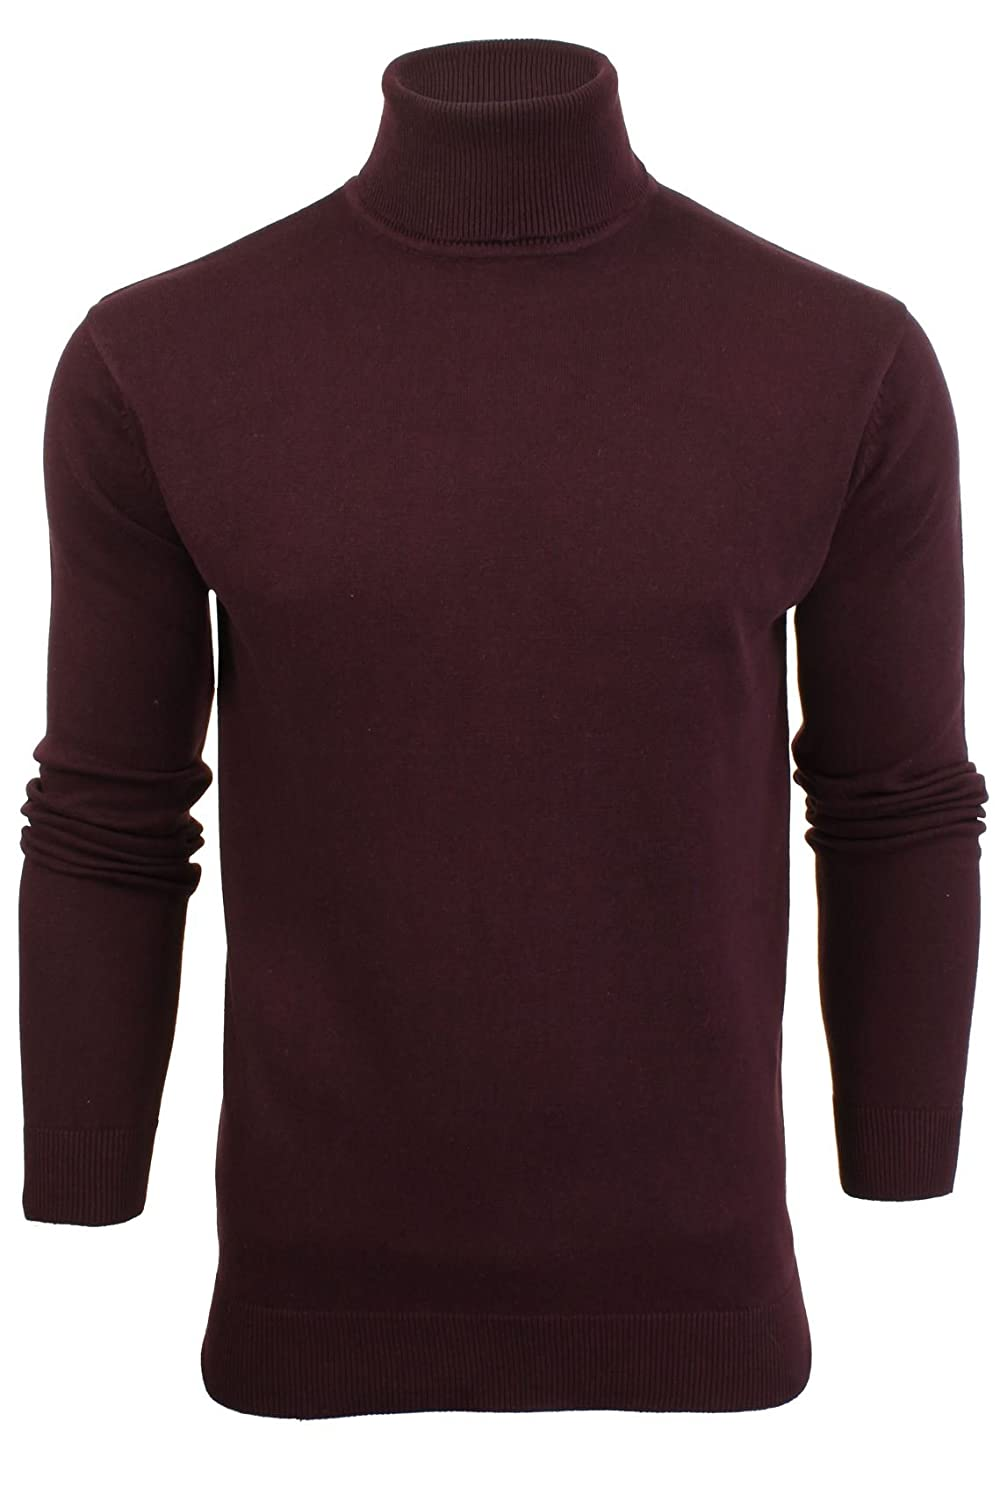 fcb23ef0f61 Mens Brave Soul Hume Designer Funnel High Roll Neck Cotton Knitted Jumper